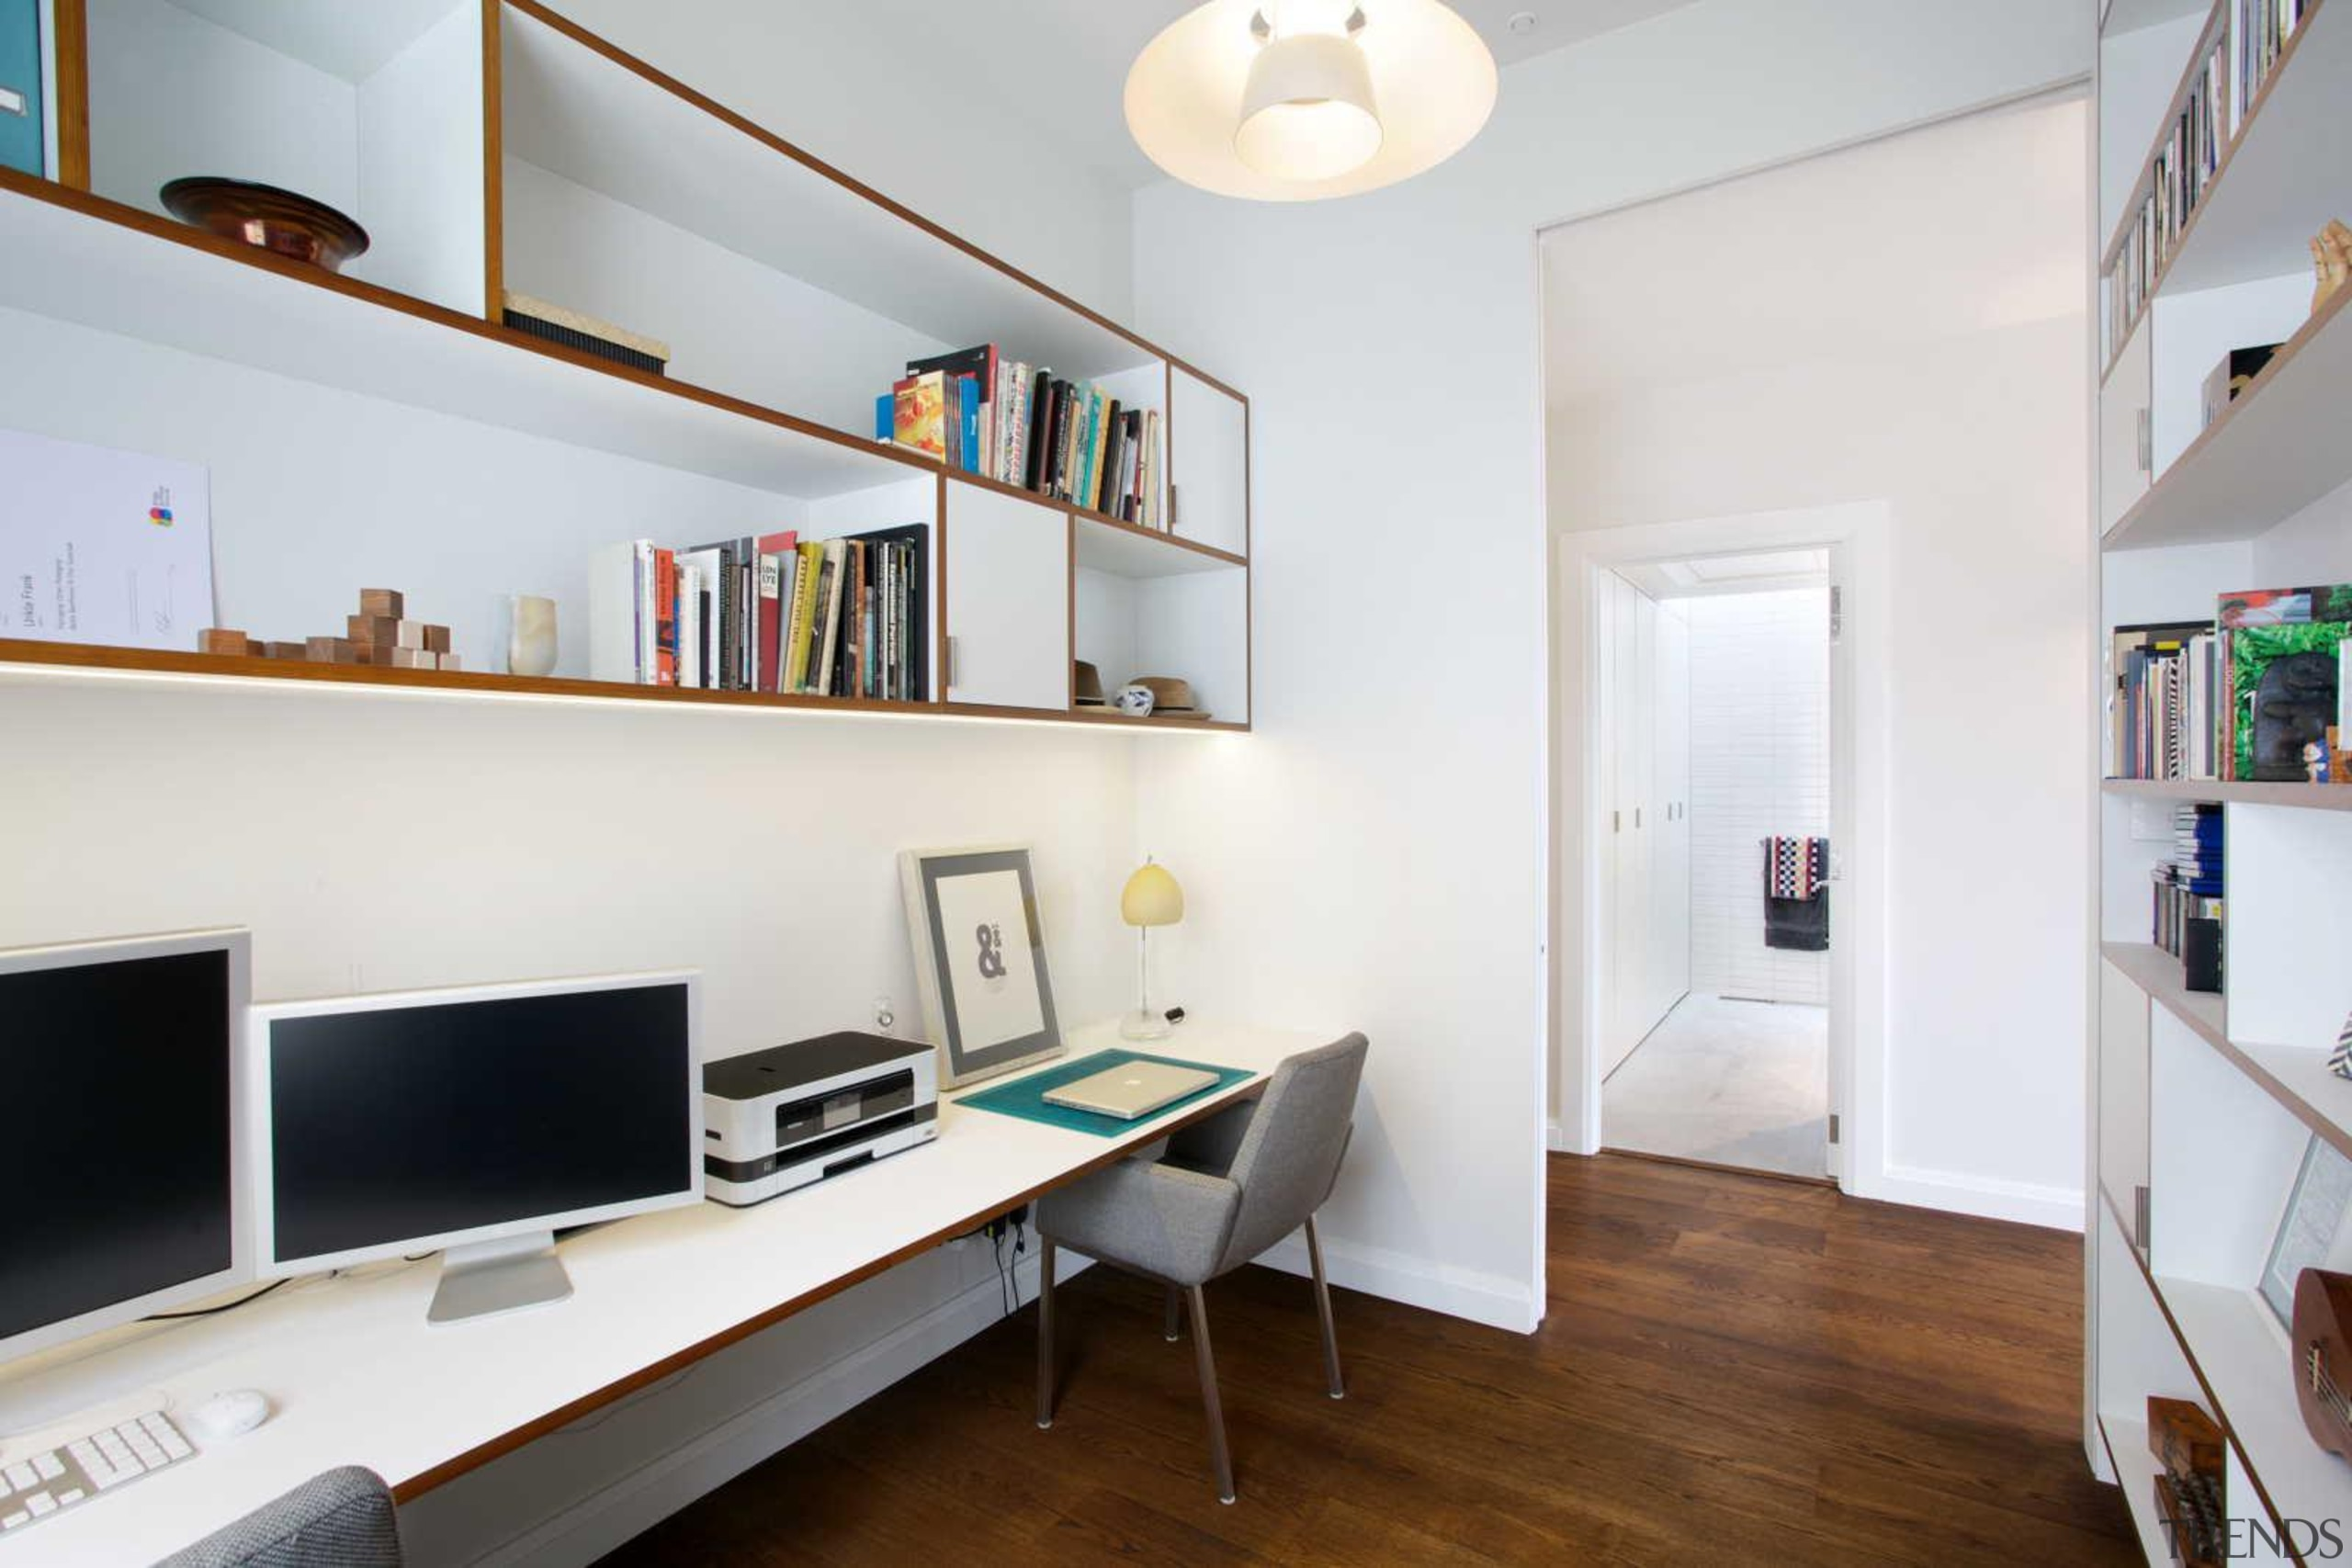 Shelving and a desk maximises useable space in apartment, furniture, home, interior design, office, property, real estate, room, shelf, shelving, white